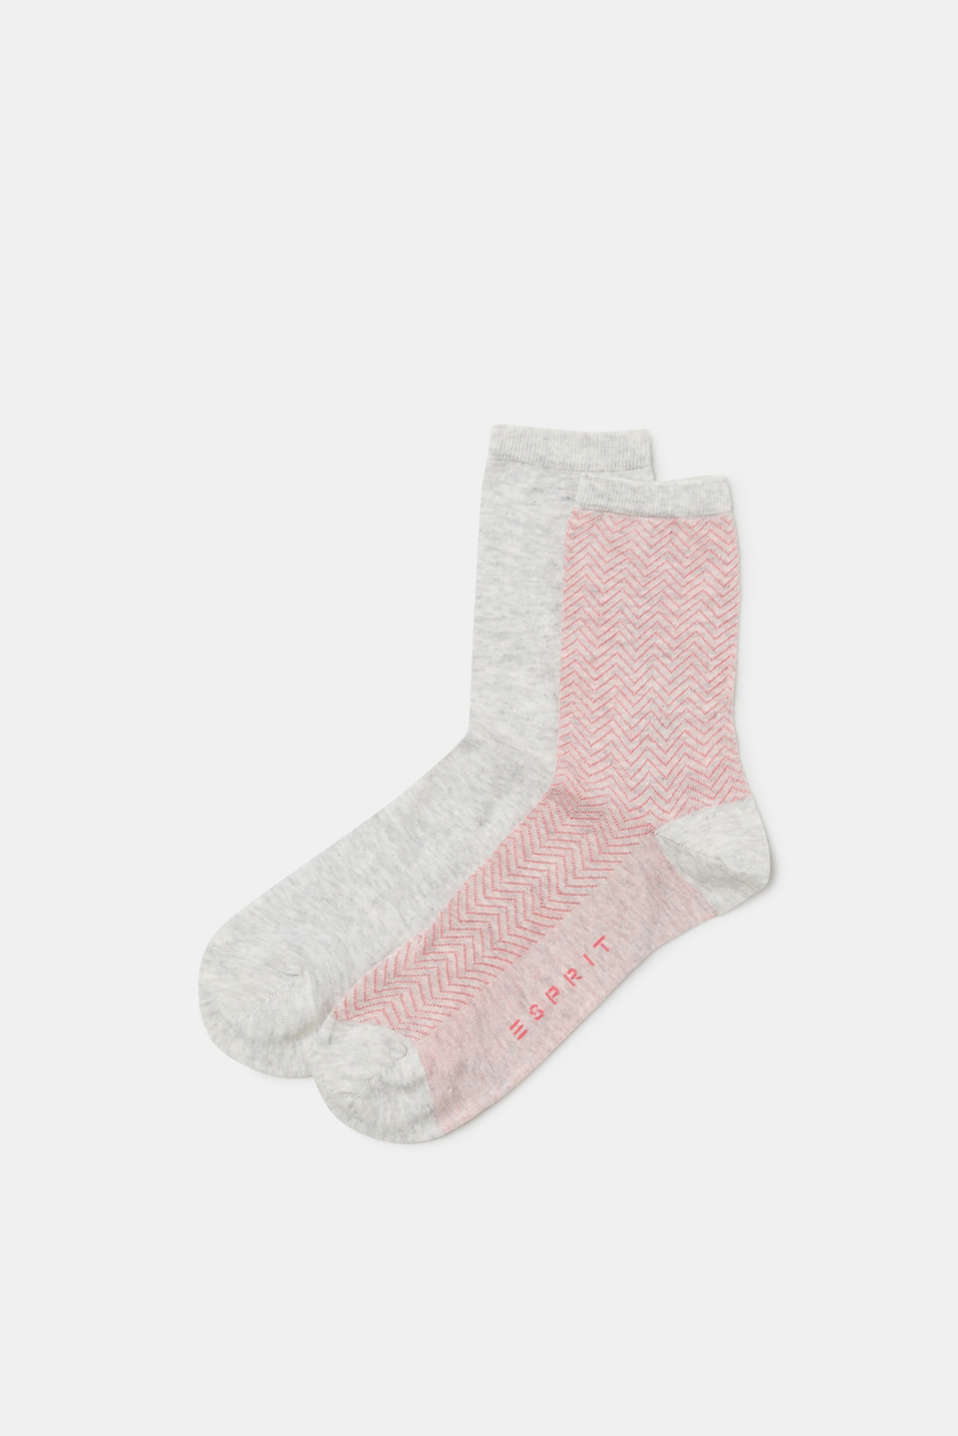 Esprit - Double pack of socks with a zig-zag pattern